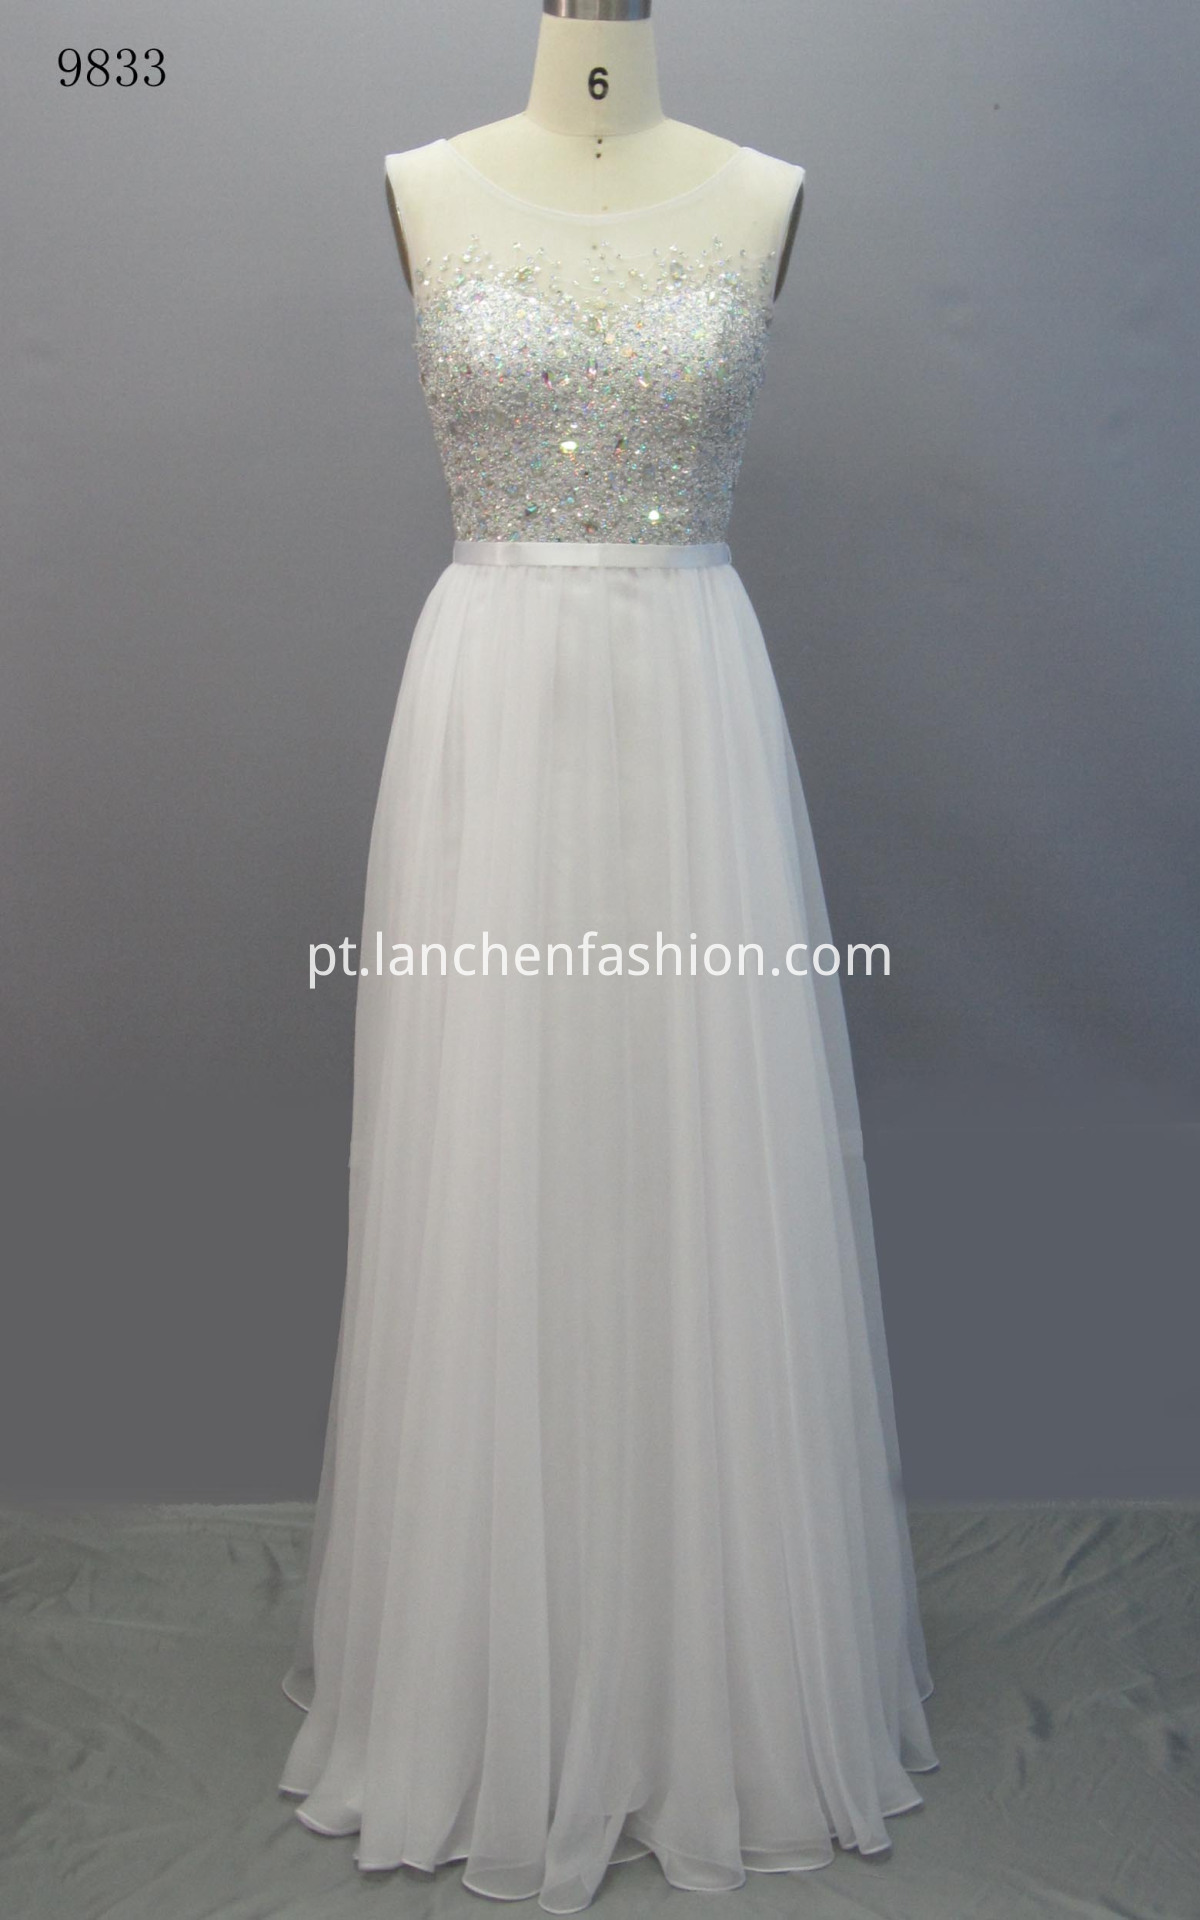 Lace Sleeveless Prom Dress